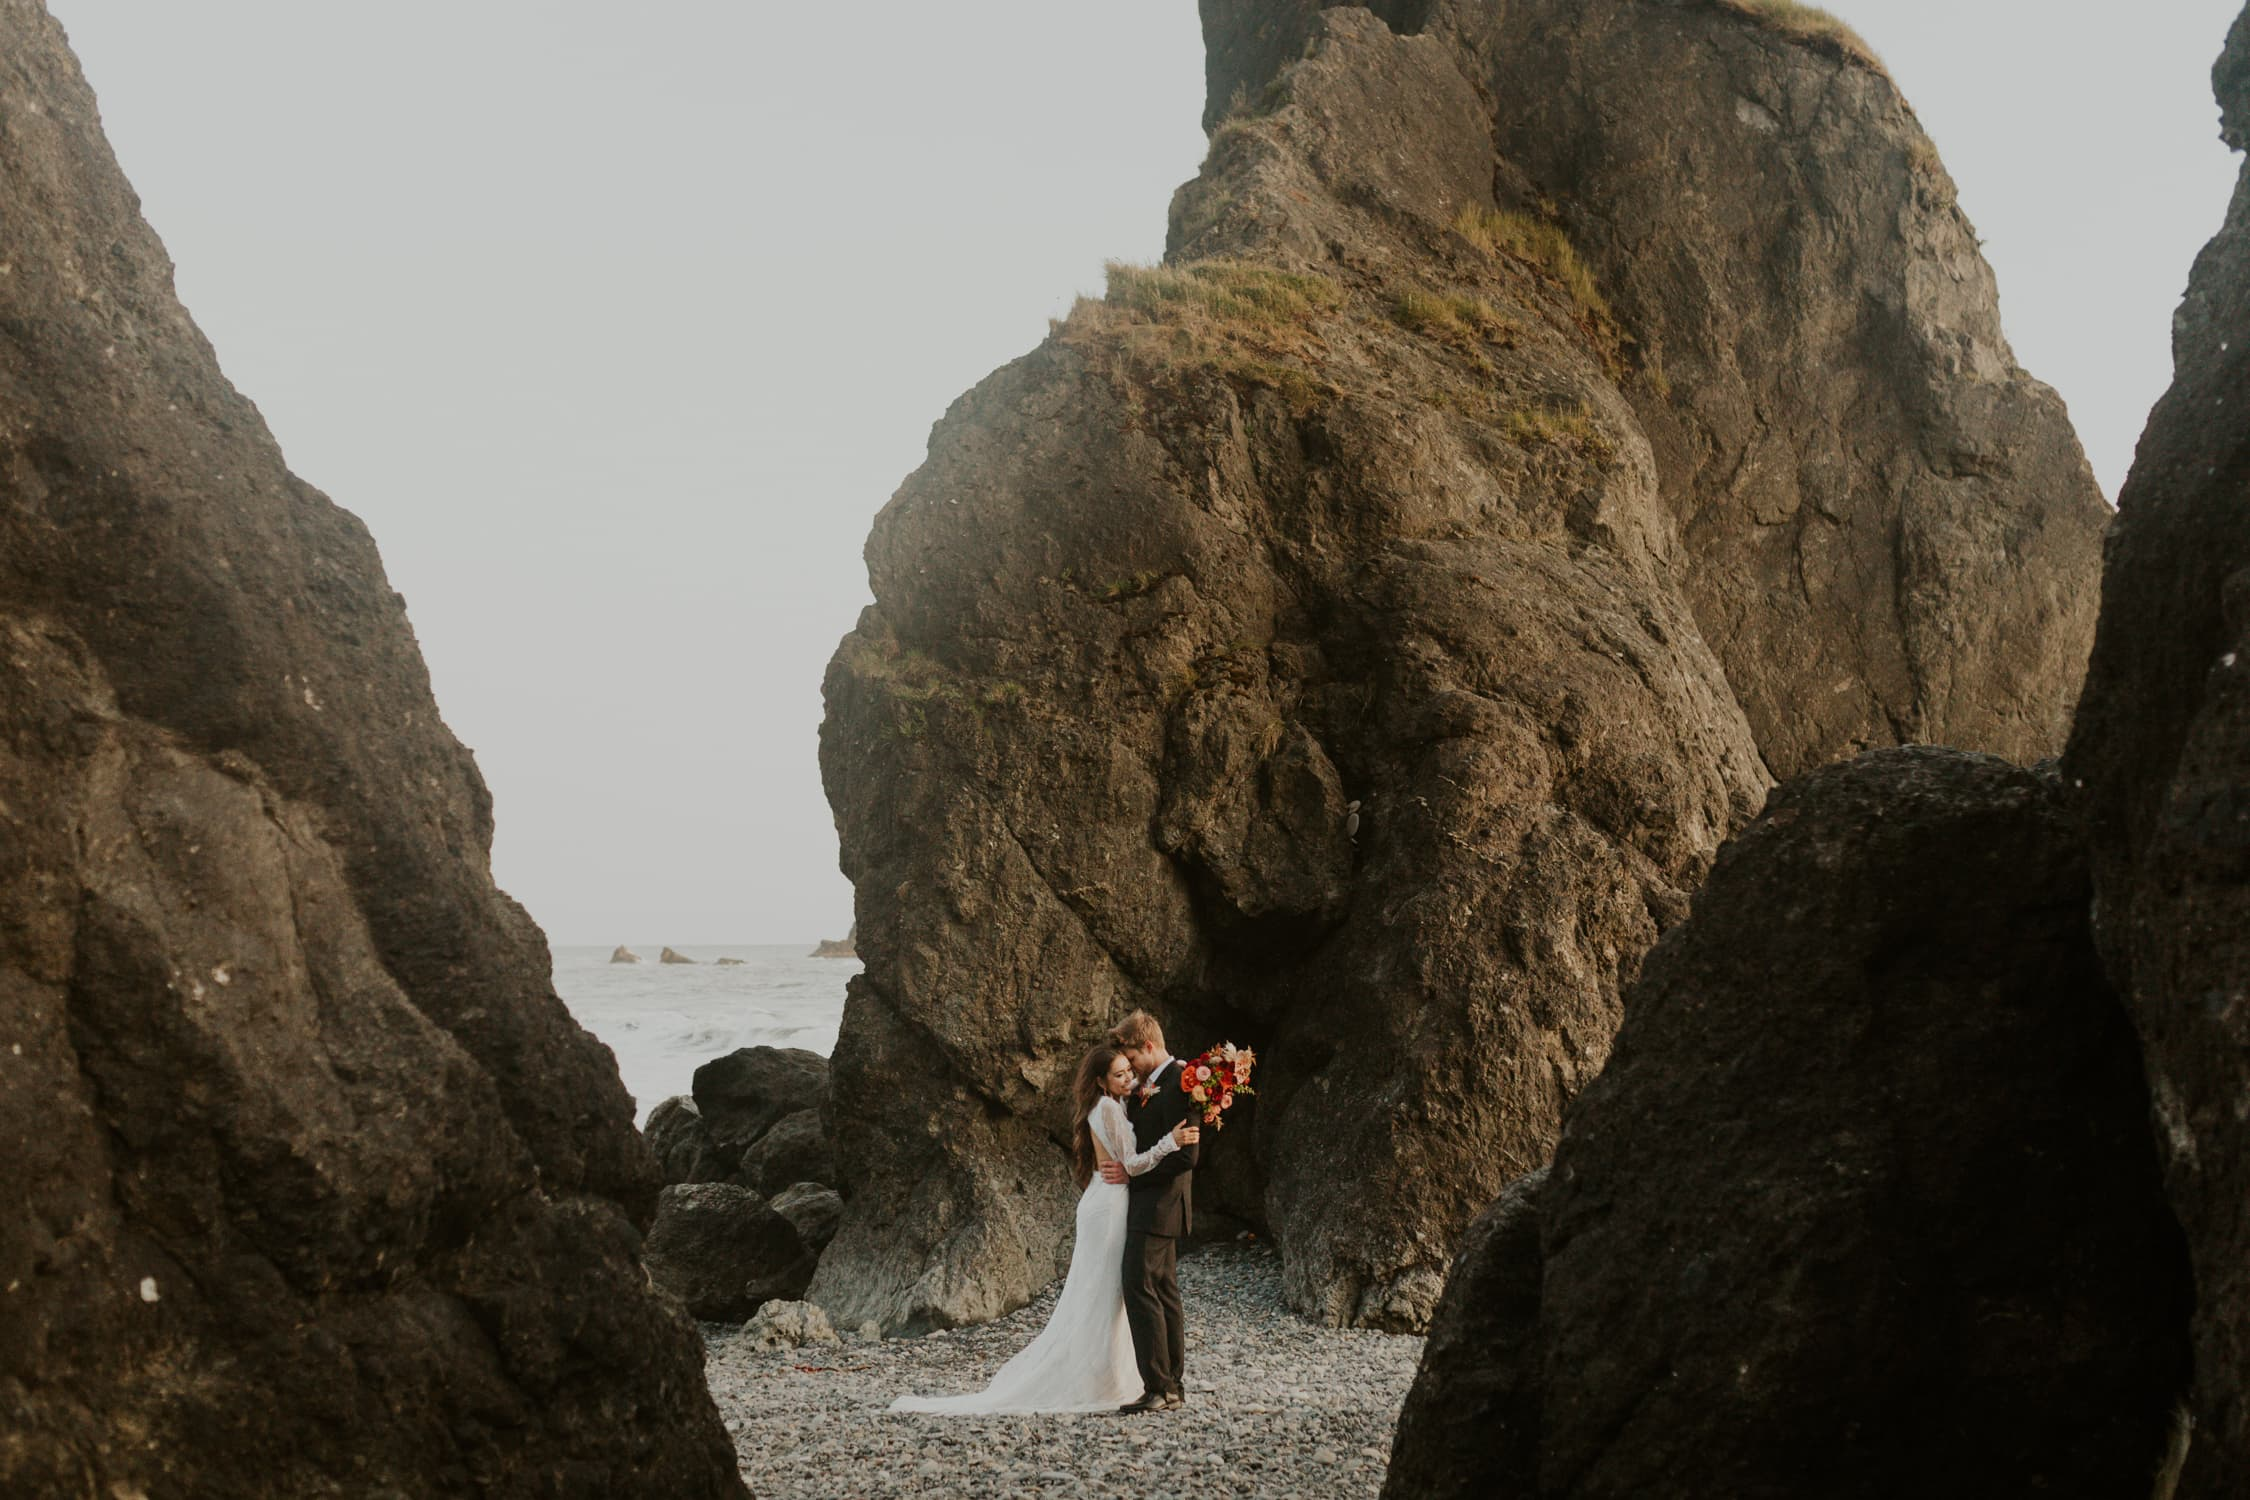 A couple hugging each other on their elopement day on Ruby Beach in Washington State.